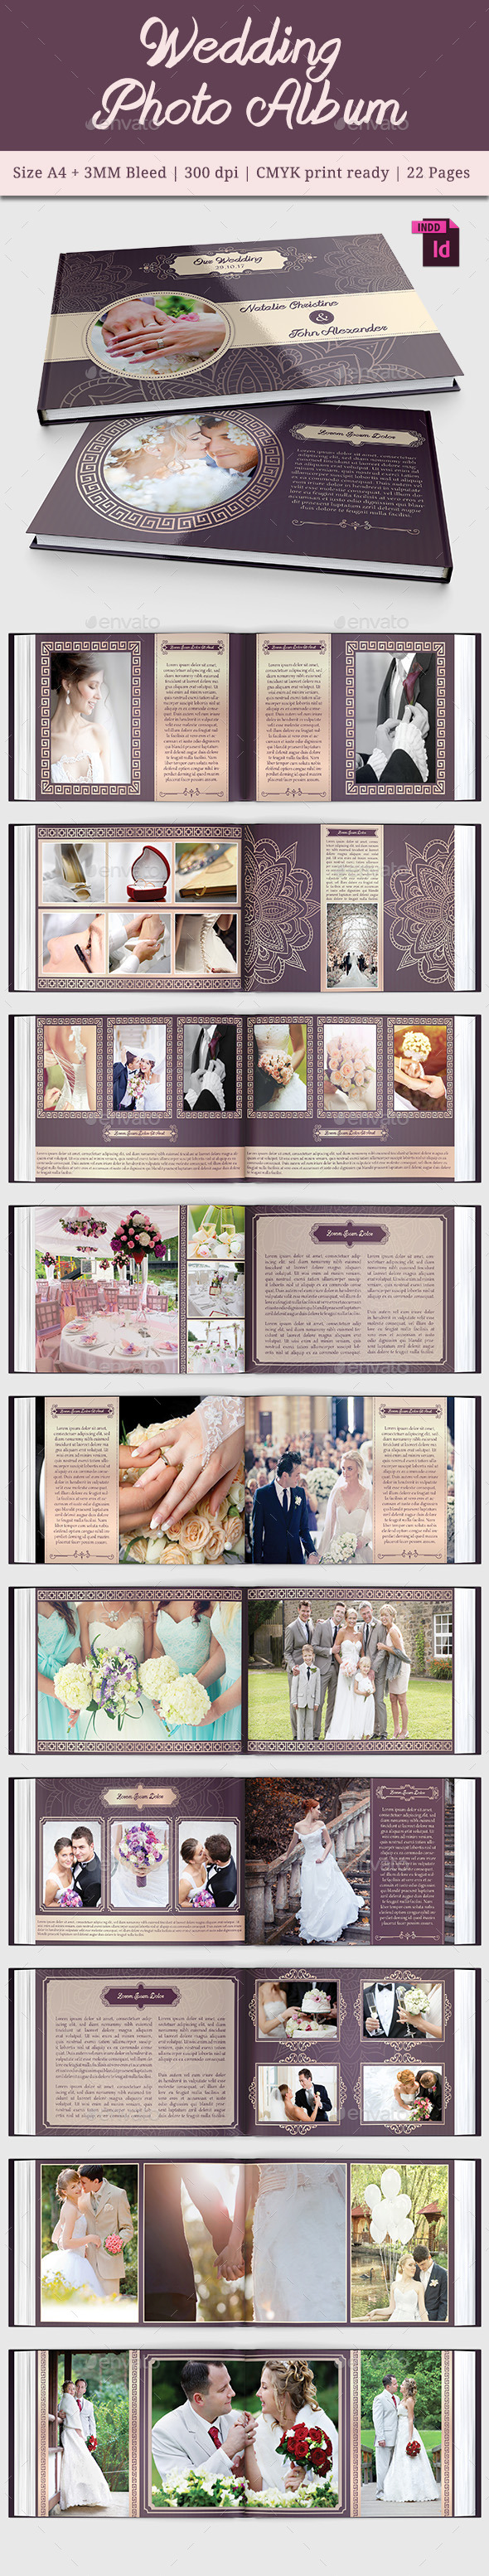 GraphicRiver Wedding Photo Album Vol 2 11468532